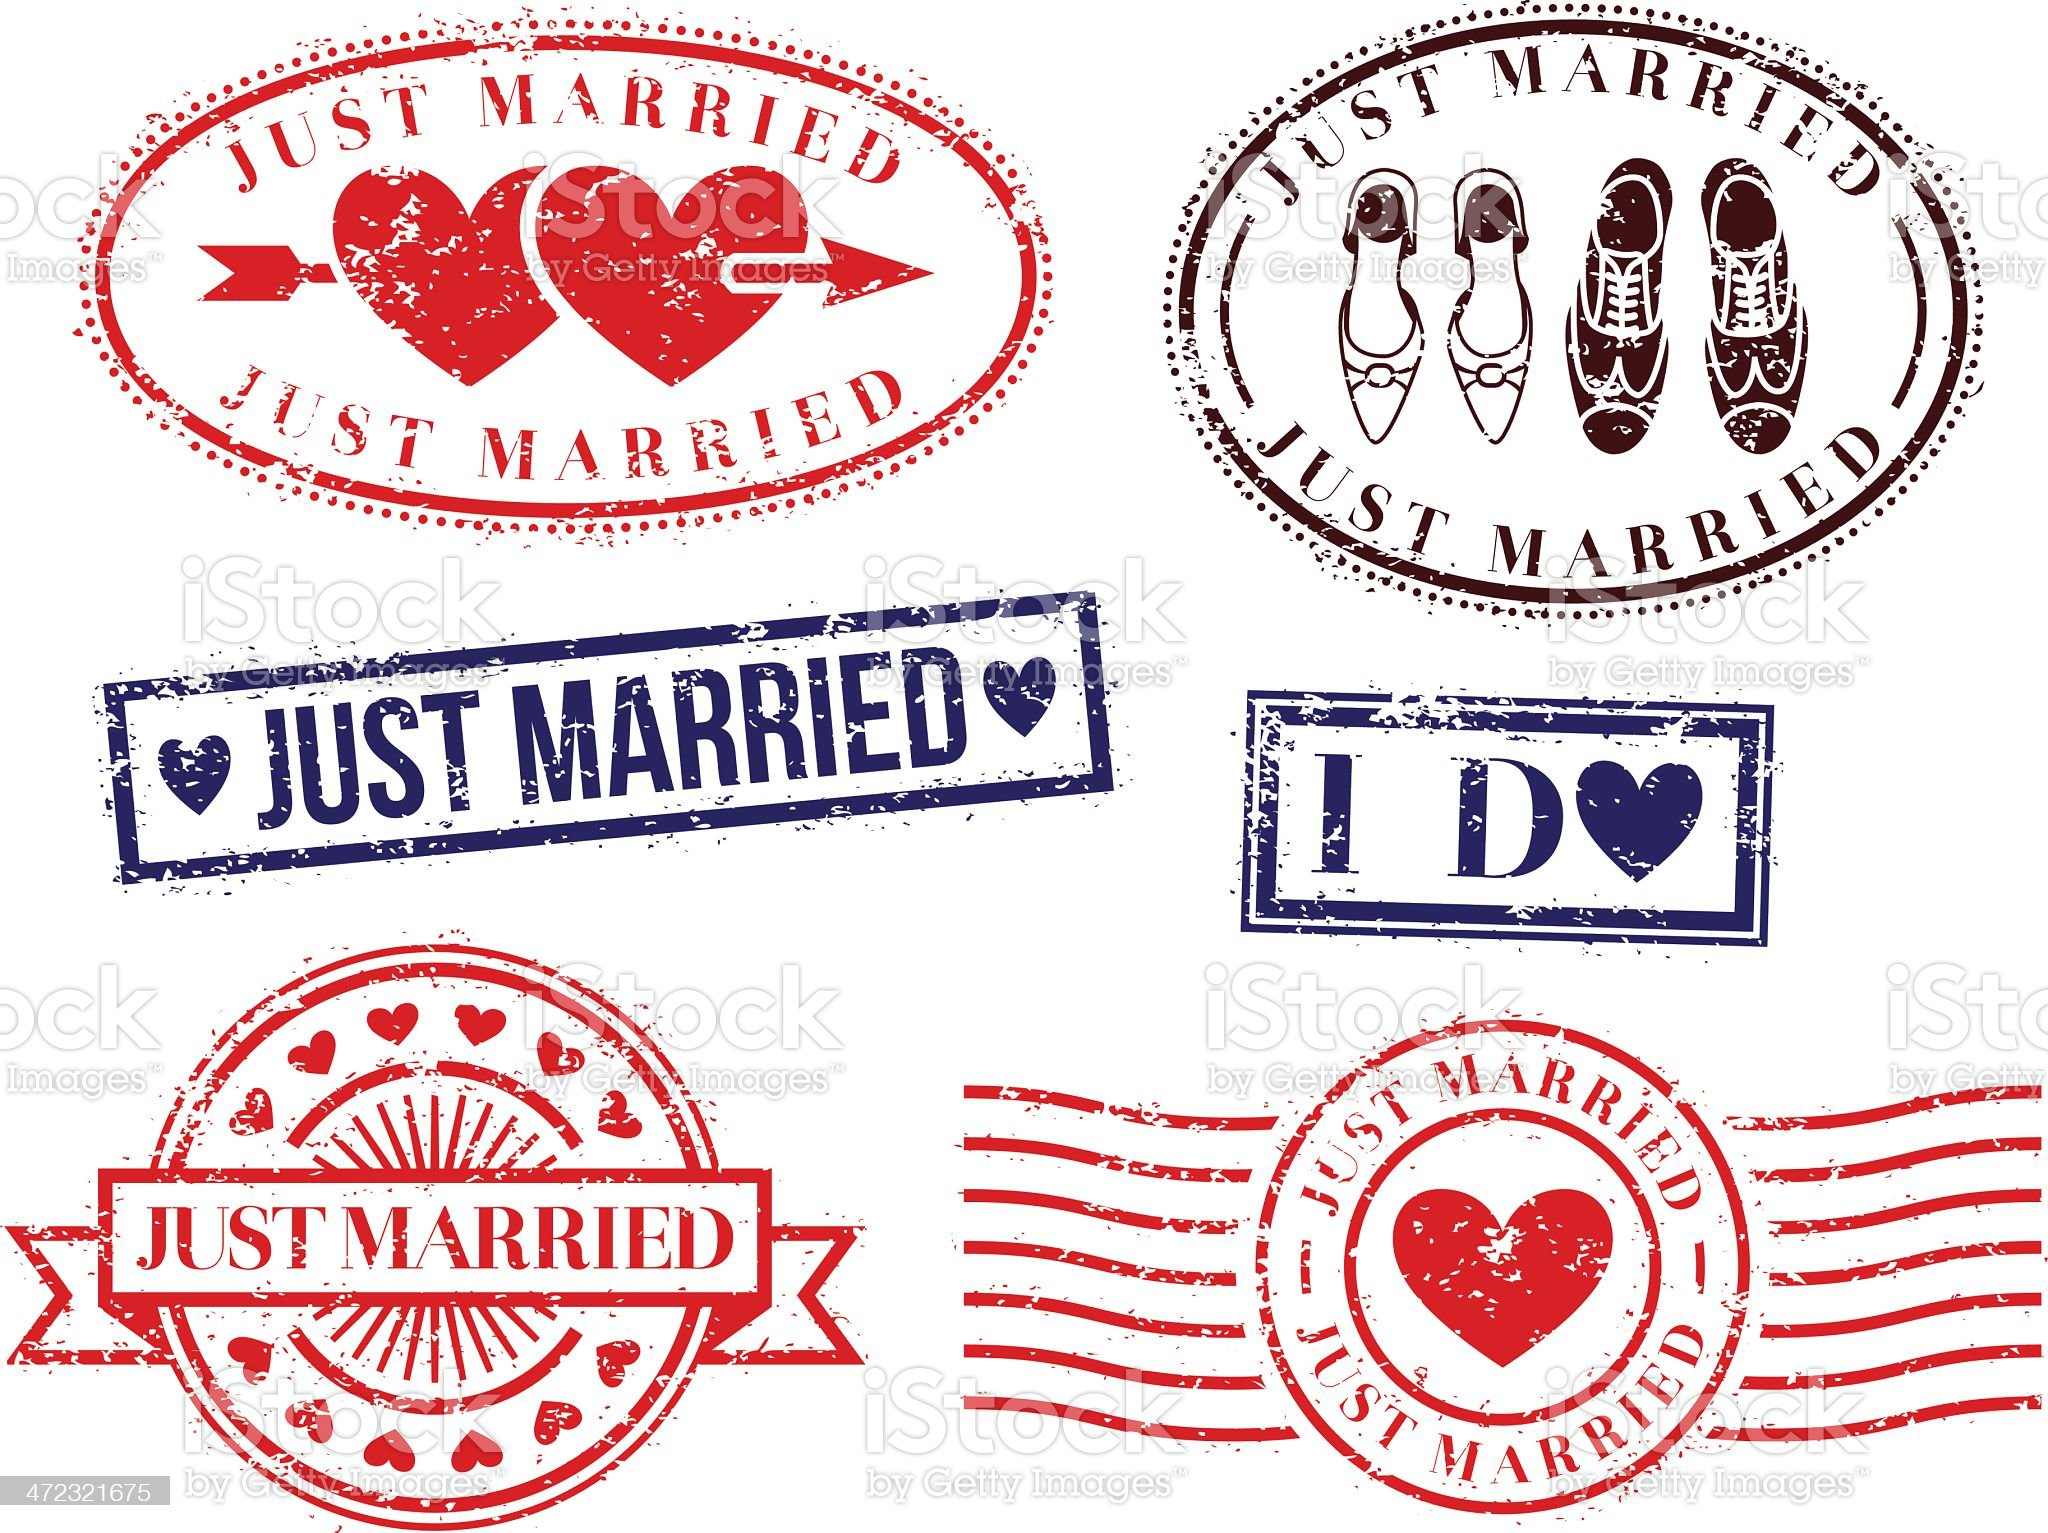 Wedding rubber stamps royalty-free stock vector art